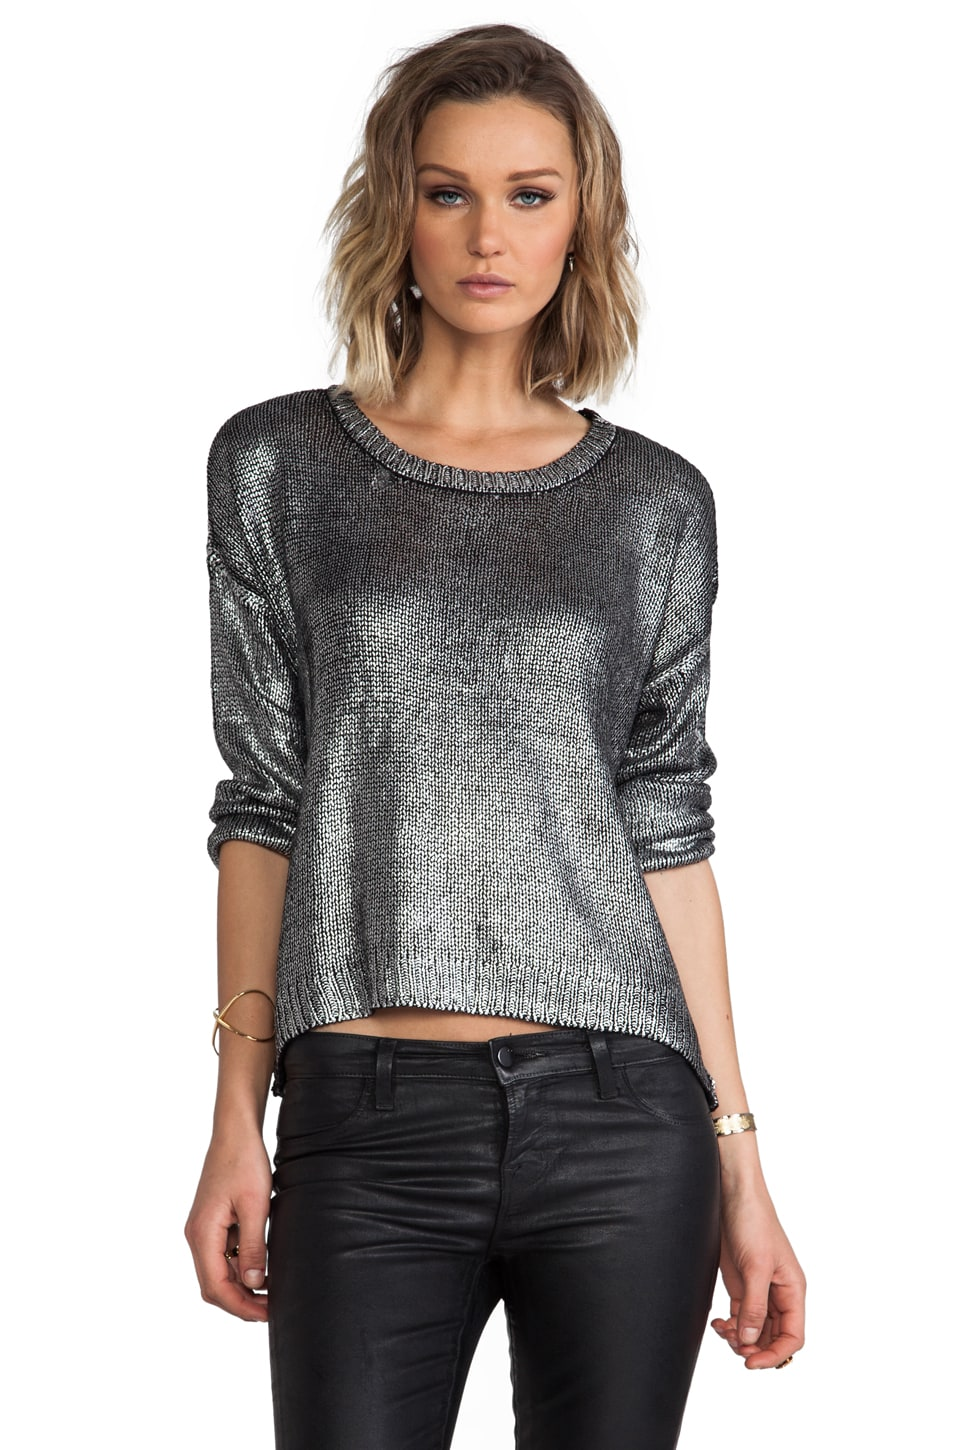 BB Dakota Chey Metallic Foiled Sweater in Cloud